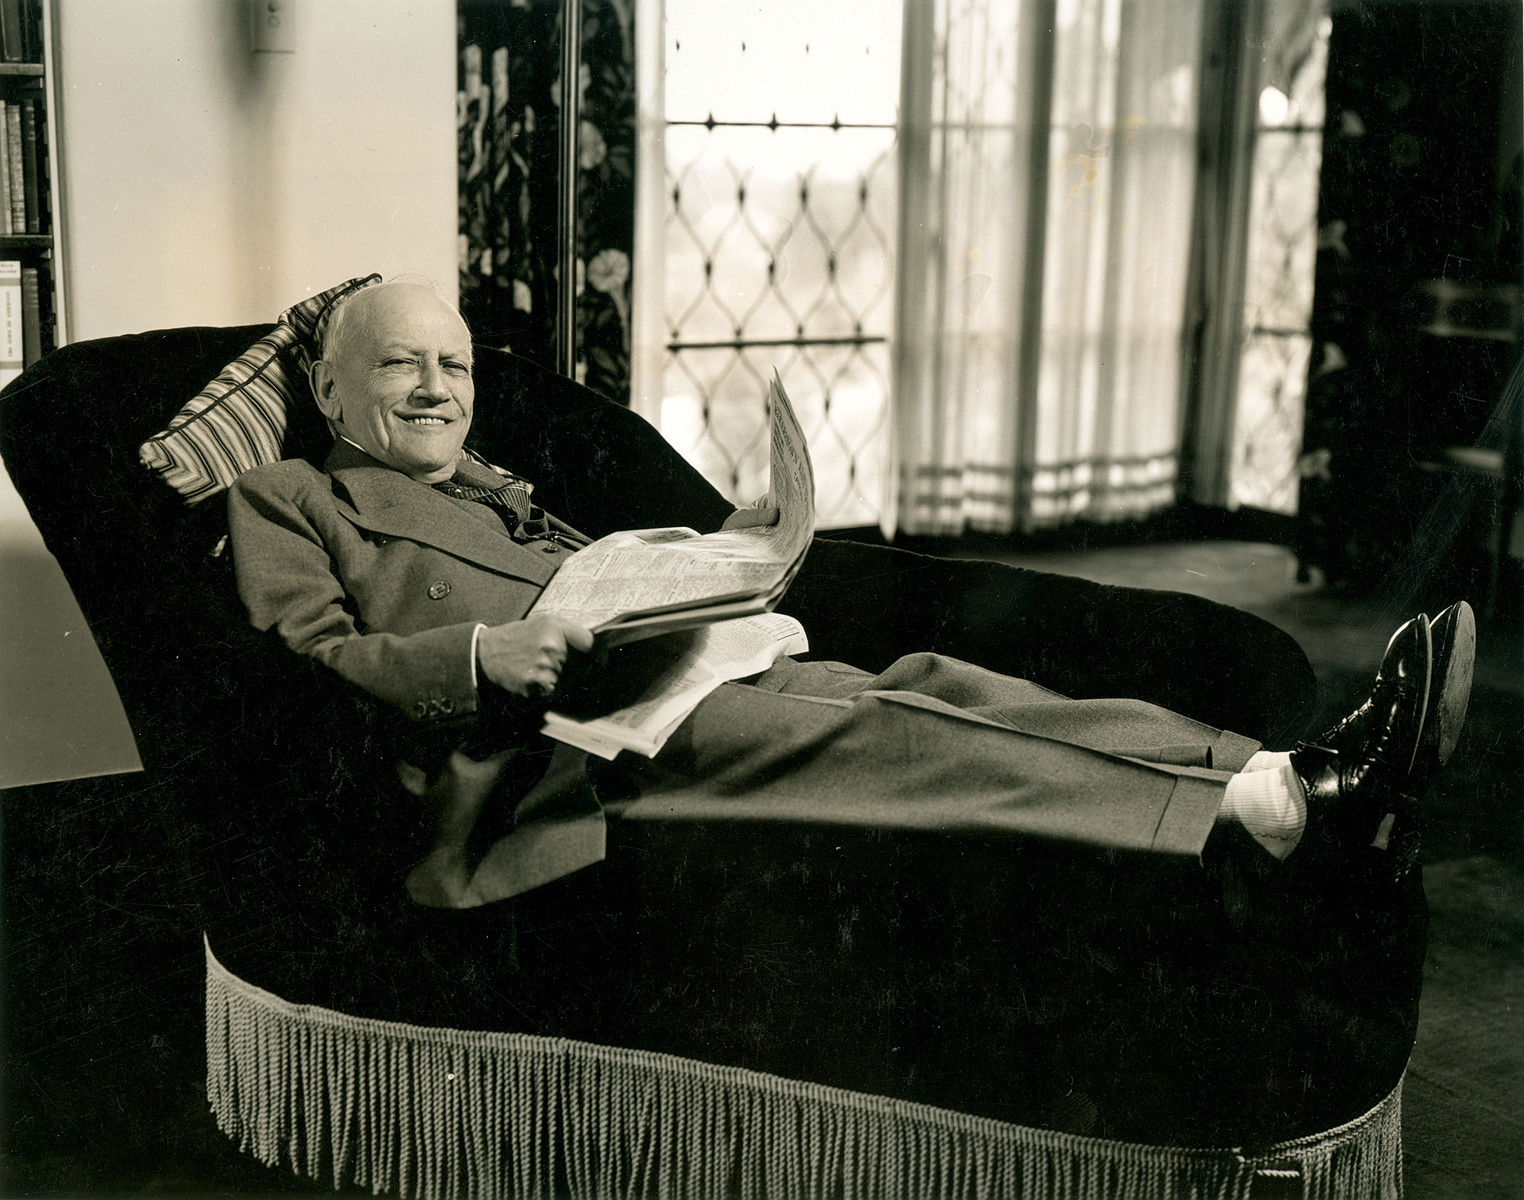 Hollywood producer Carl Laemmle rests on a couch reading a newspaper.